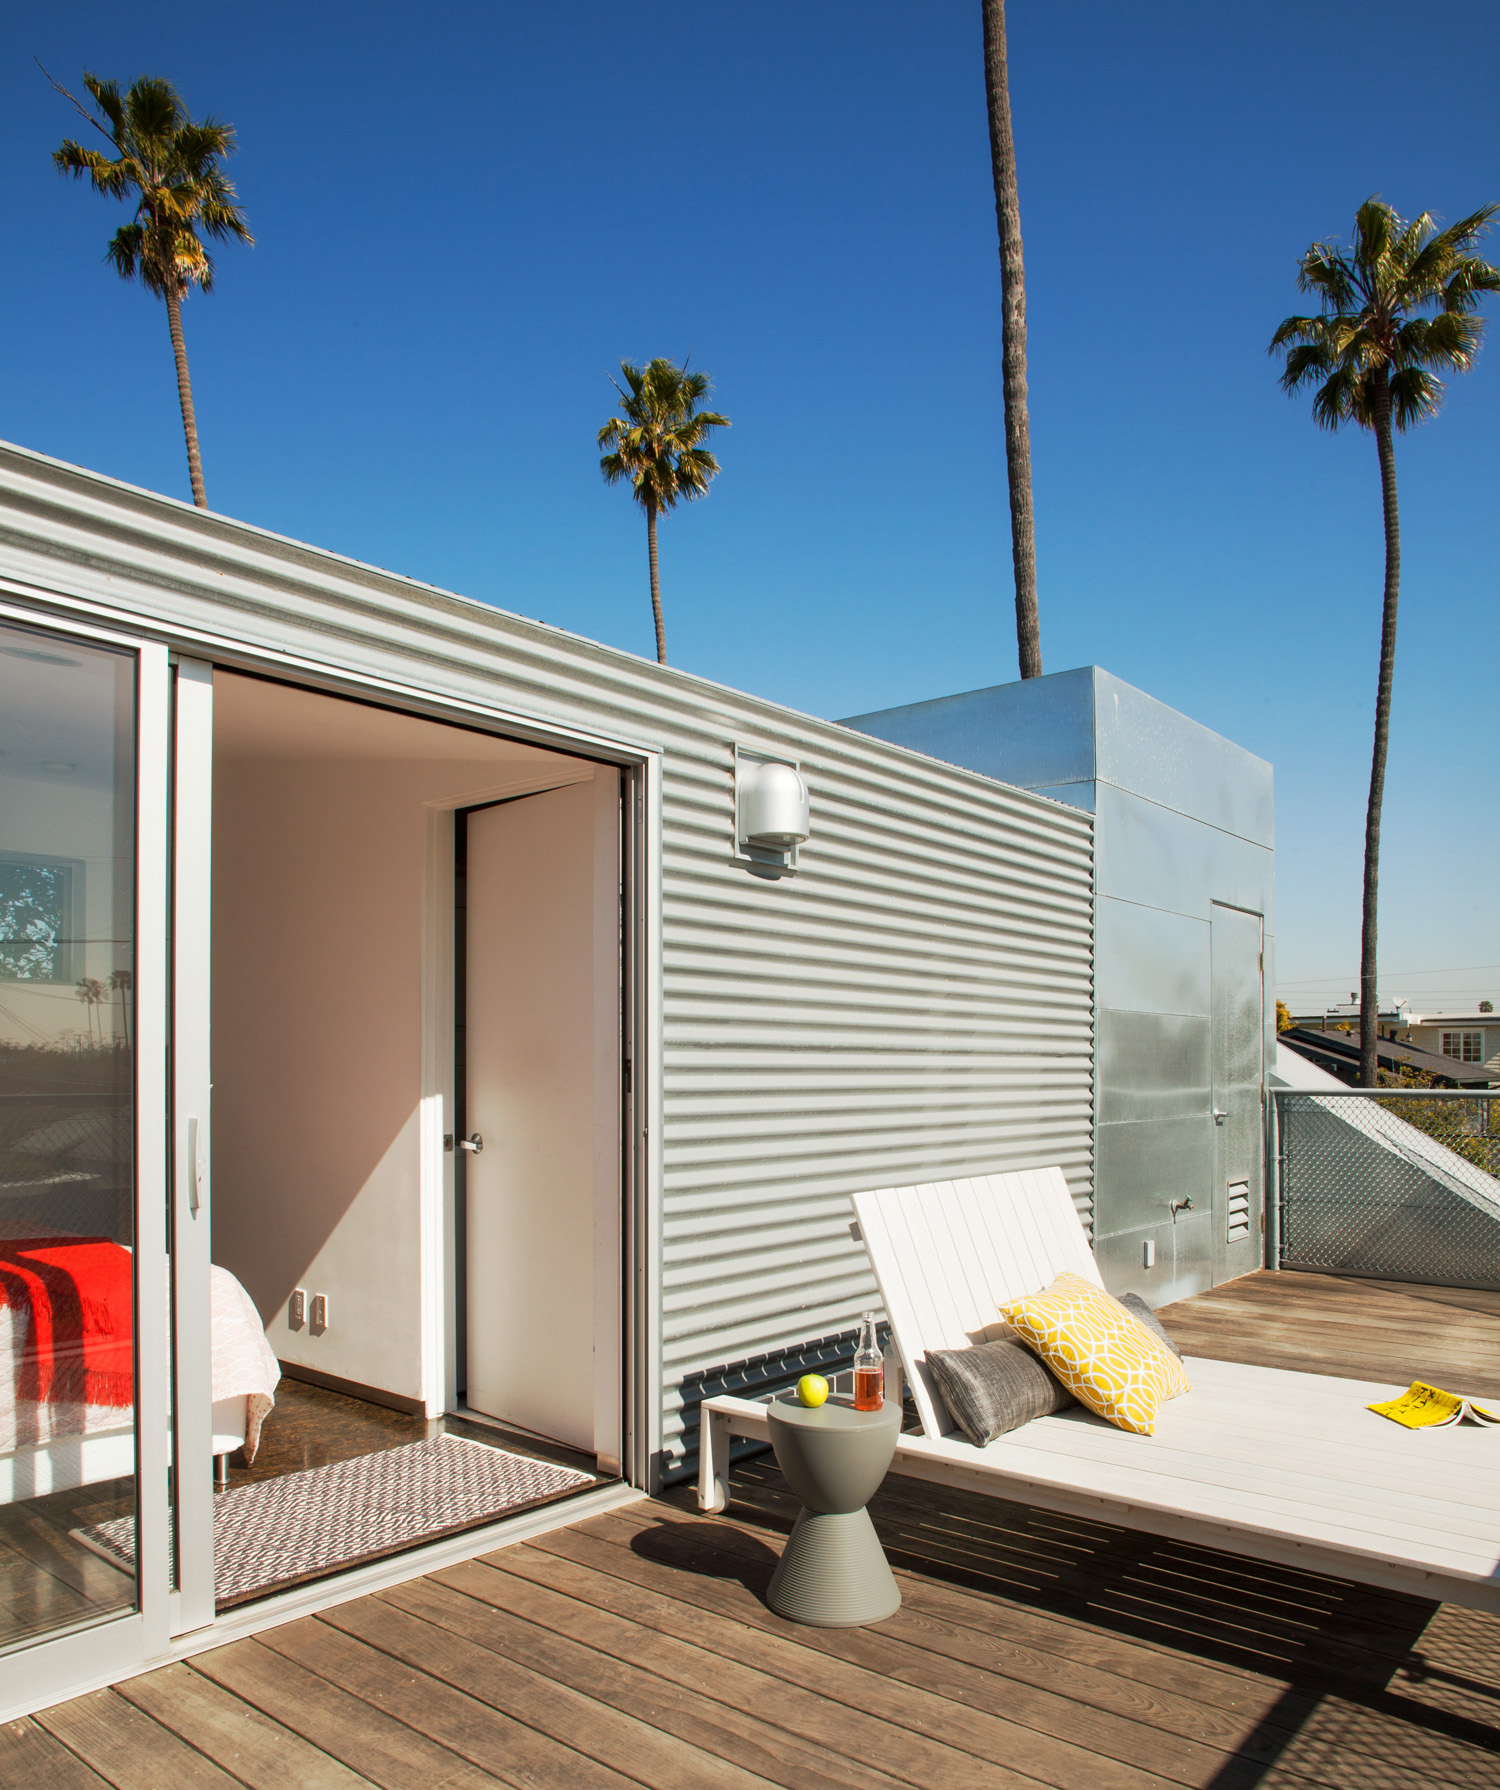 House Finder Websites: How Do You Make A Small Home Live Large? Use Your Outdoors